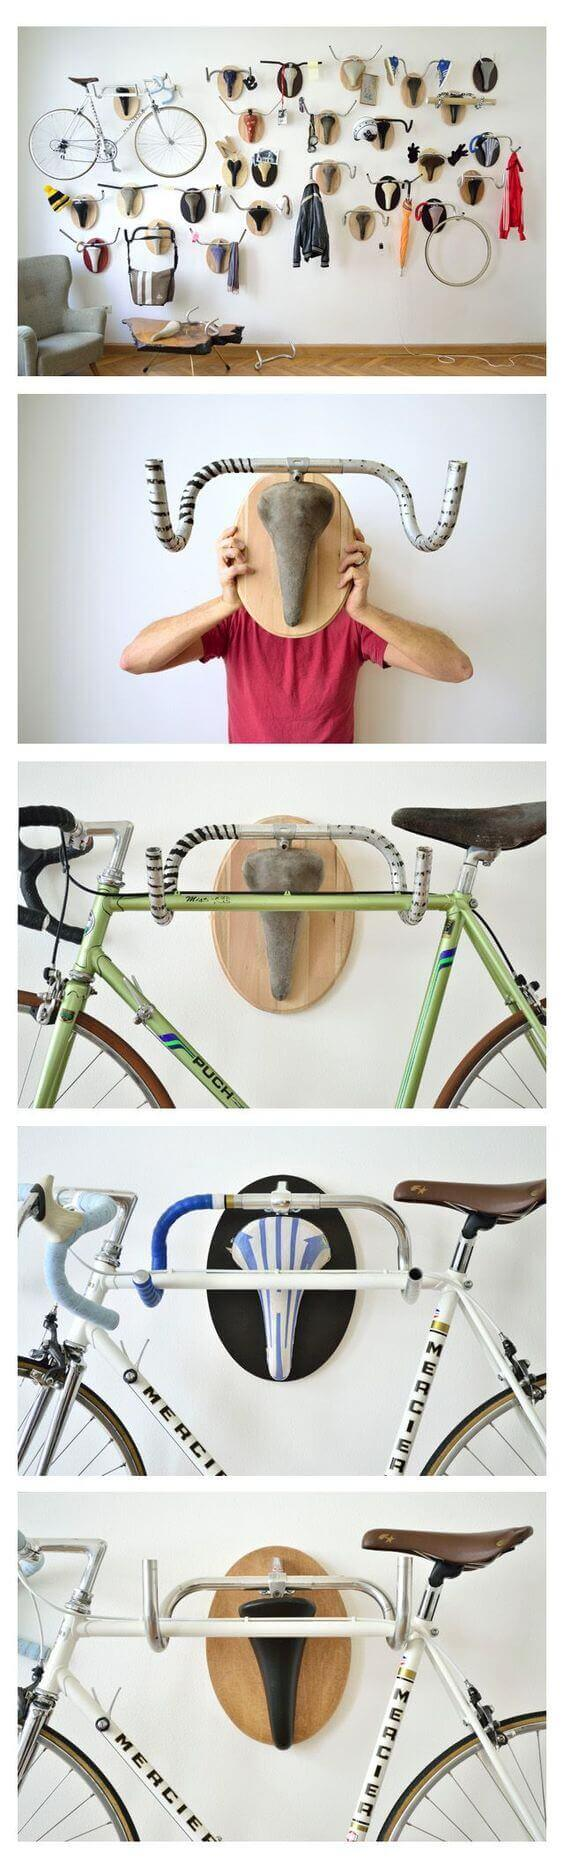 8 Unique Bike Storage Ideas 3